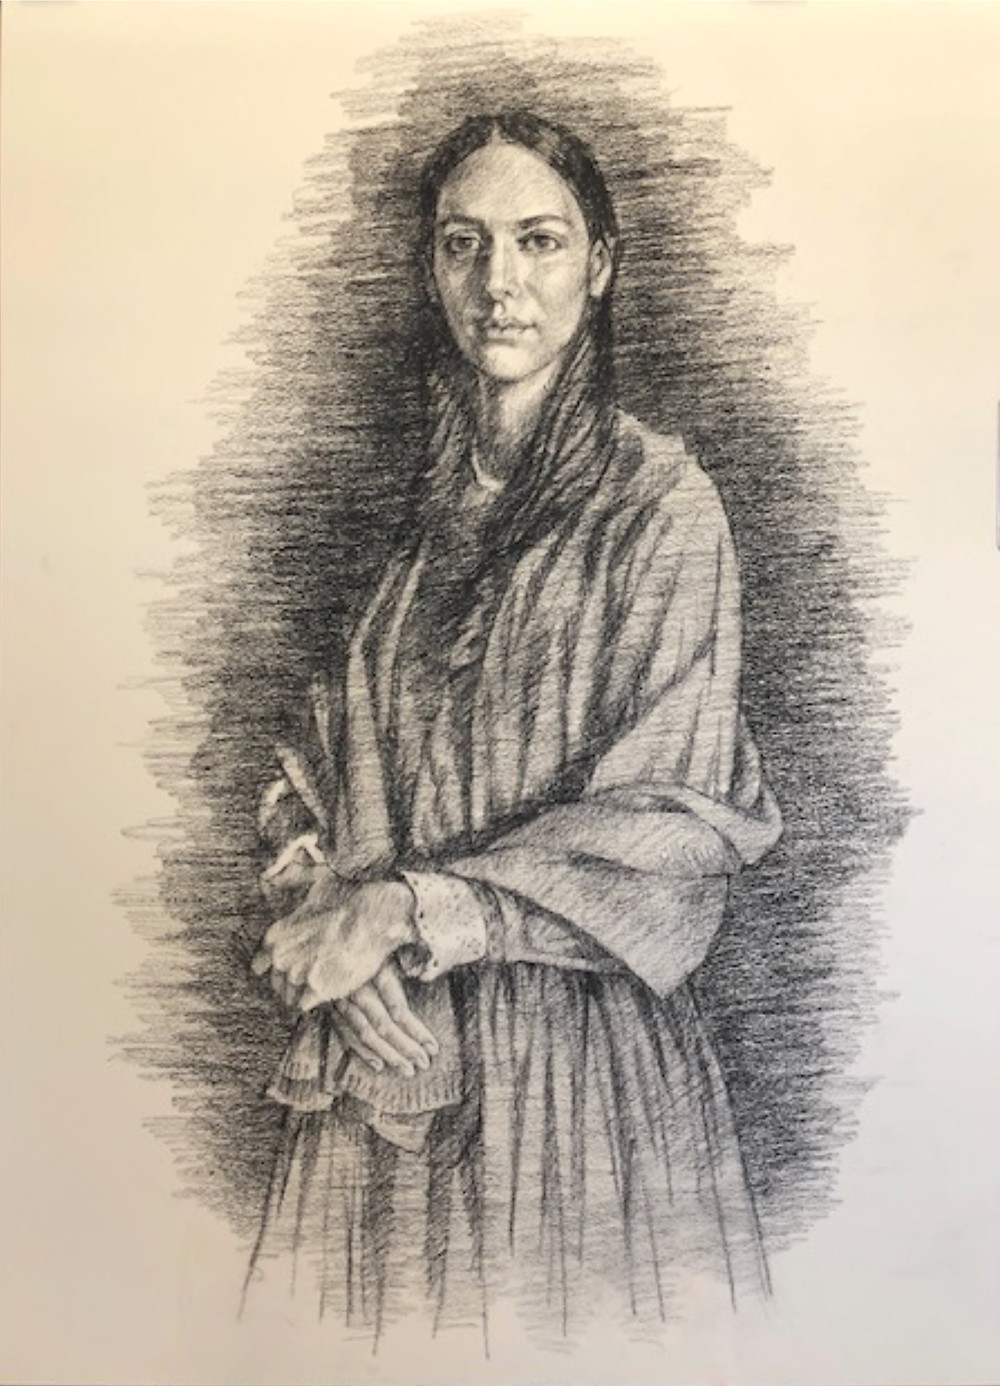 Black and white drawing of a young pioneer woman.